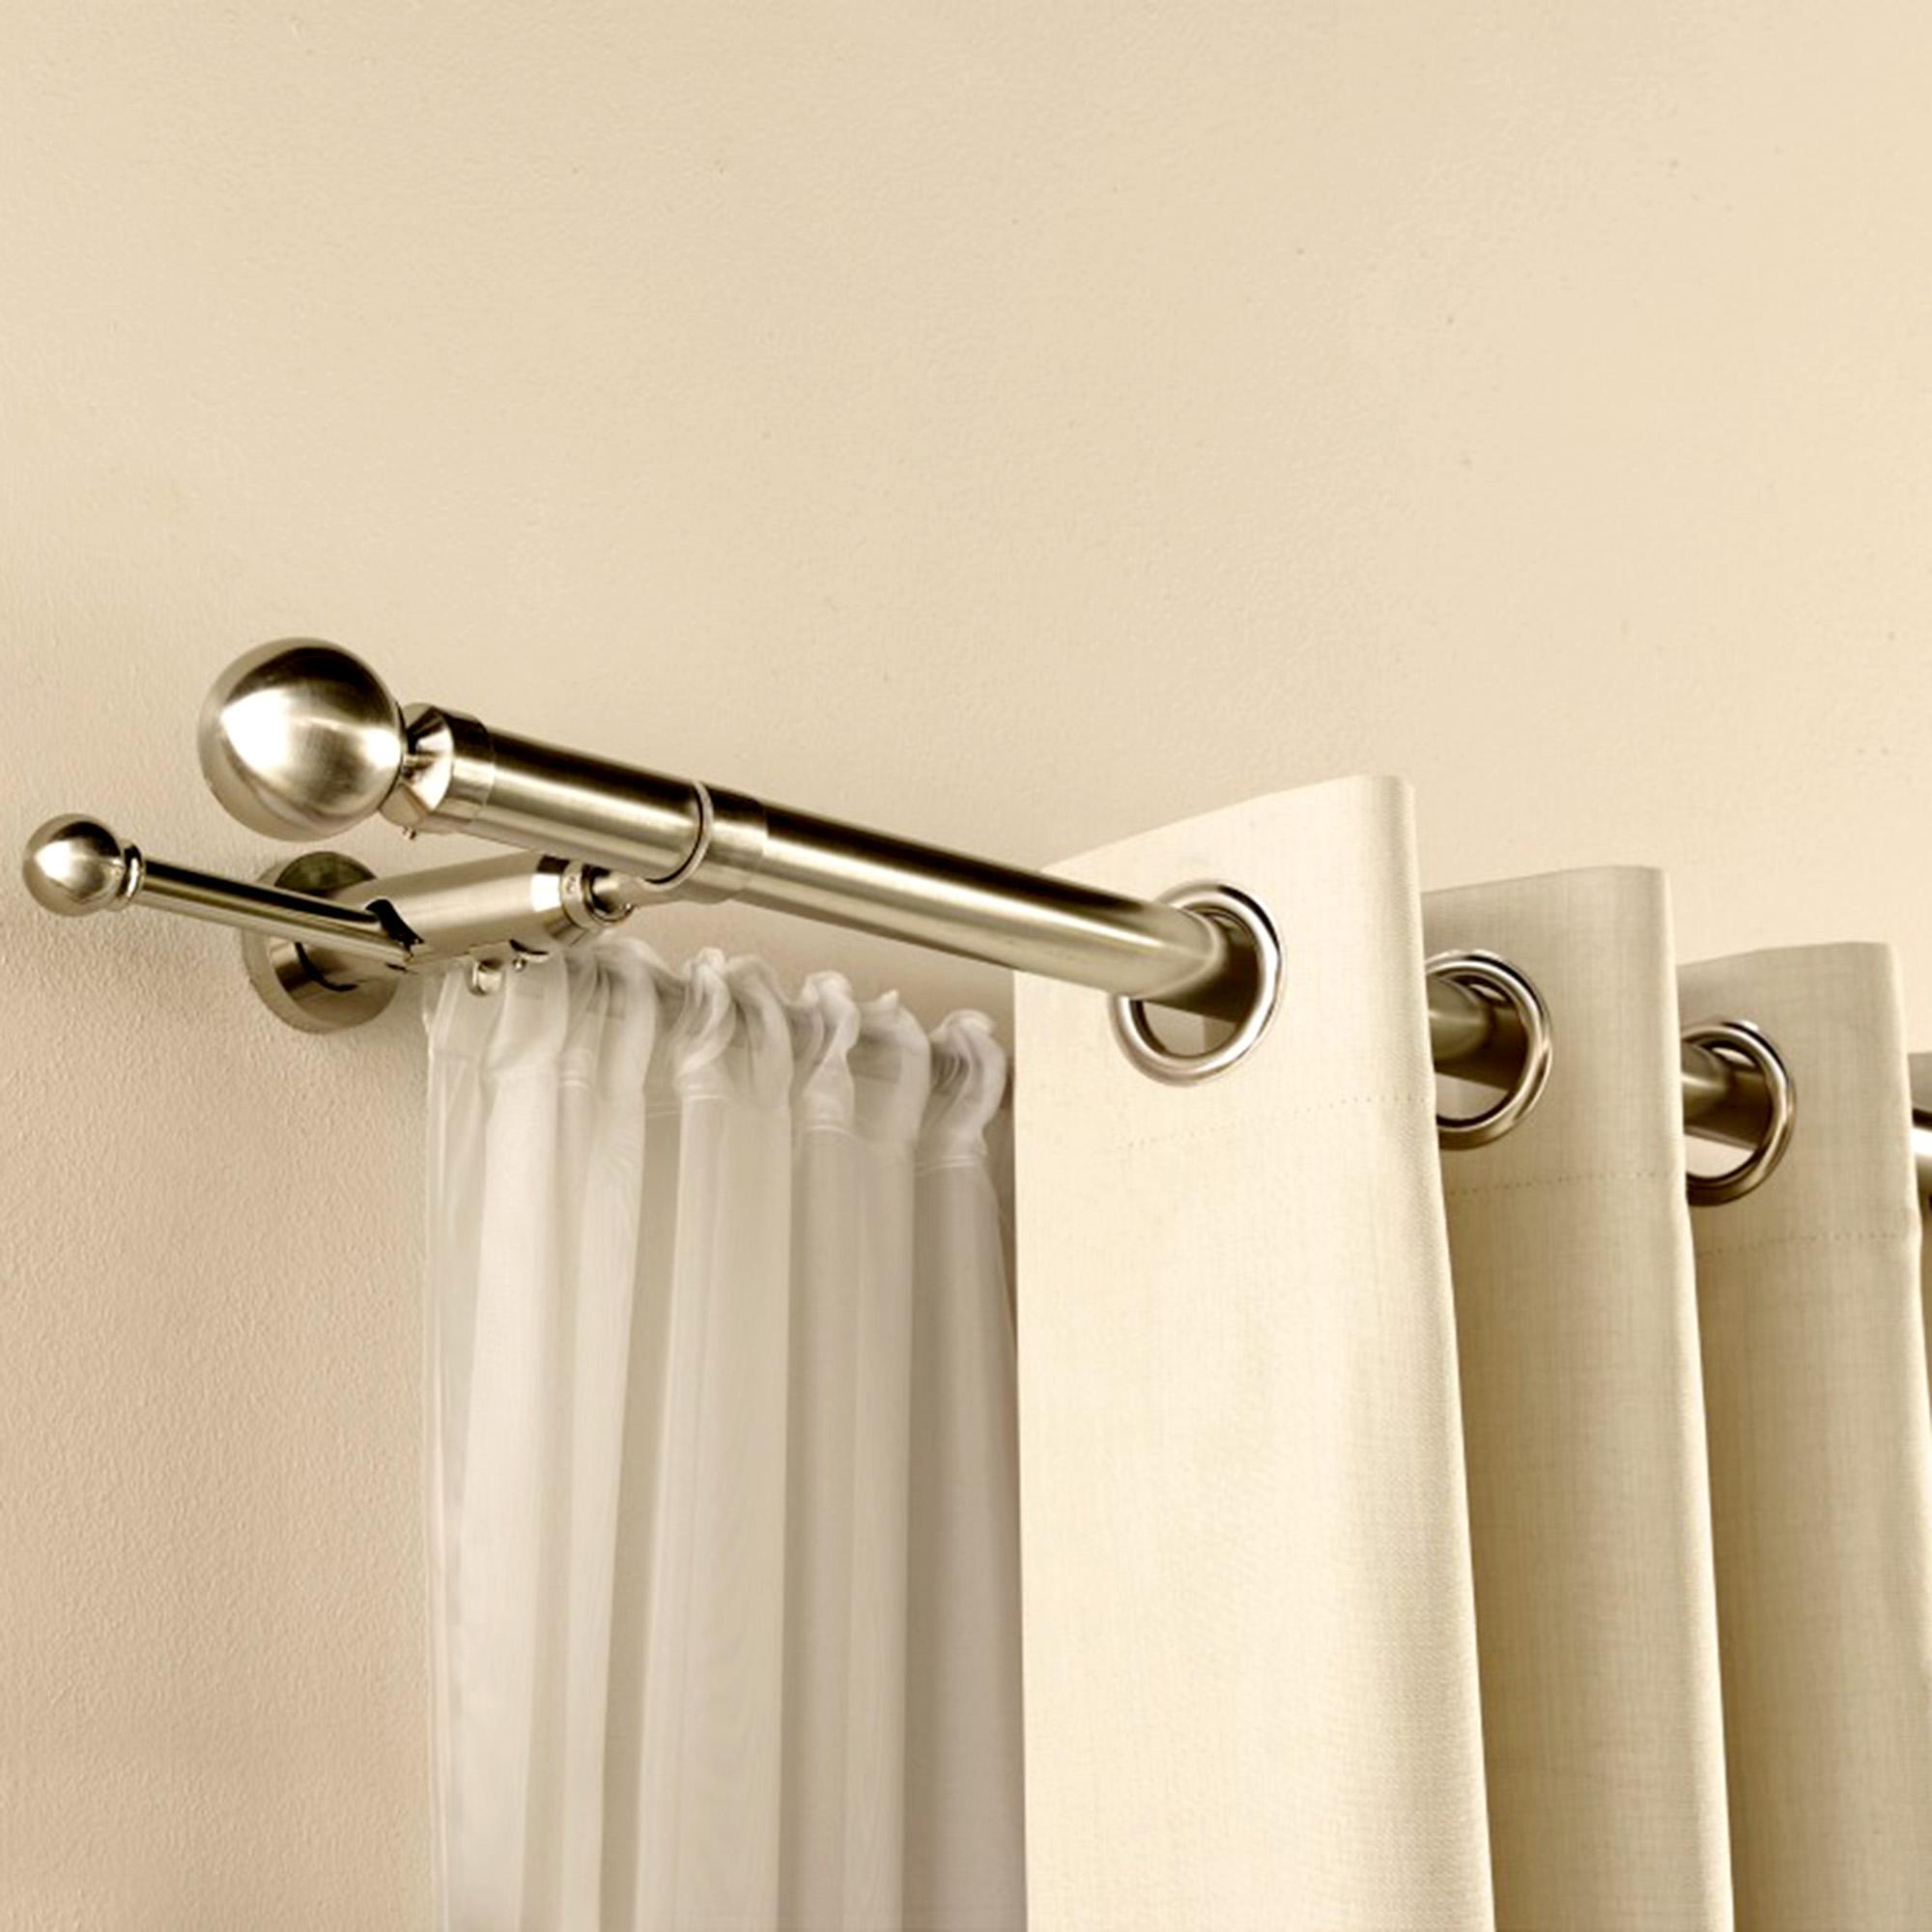 Tips on Selecting Striking Curtain Poles